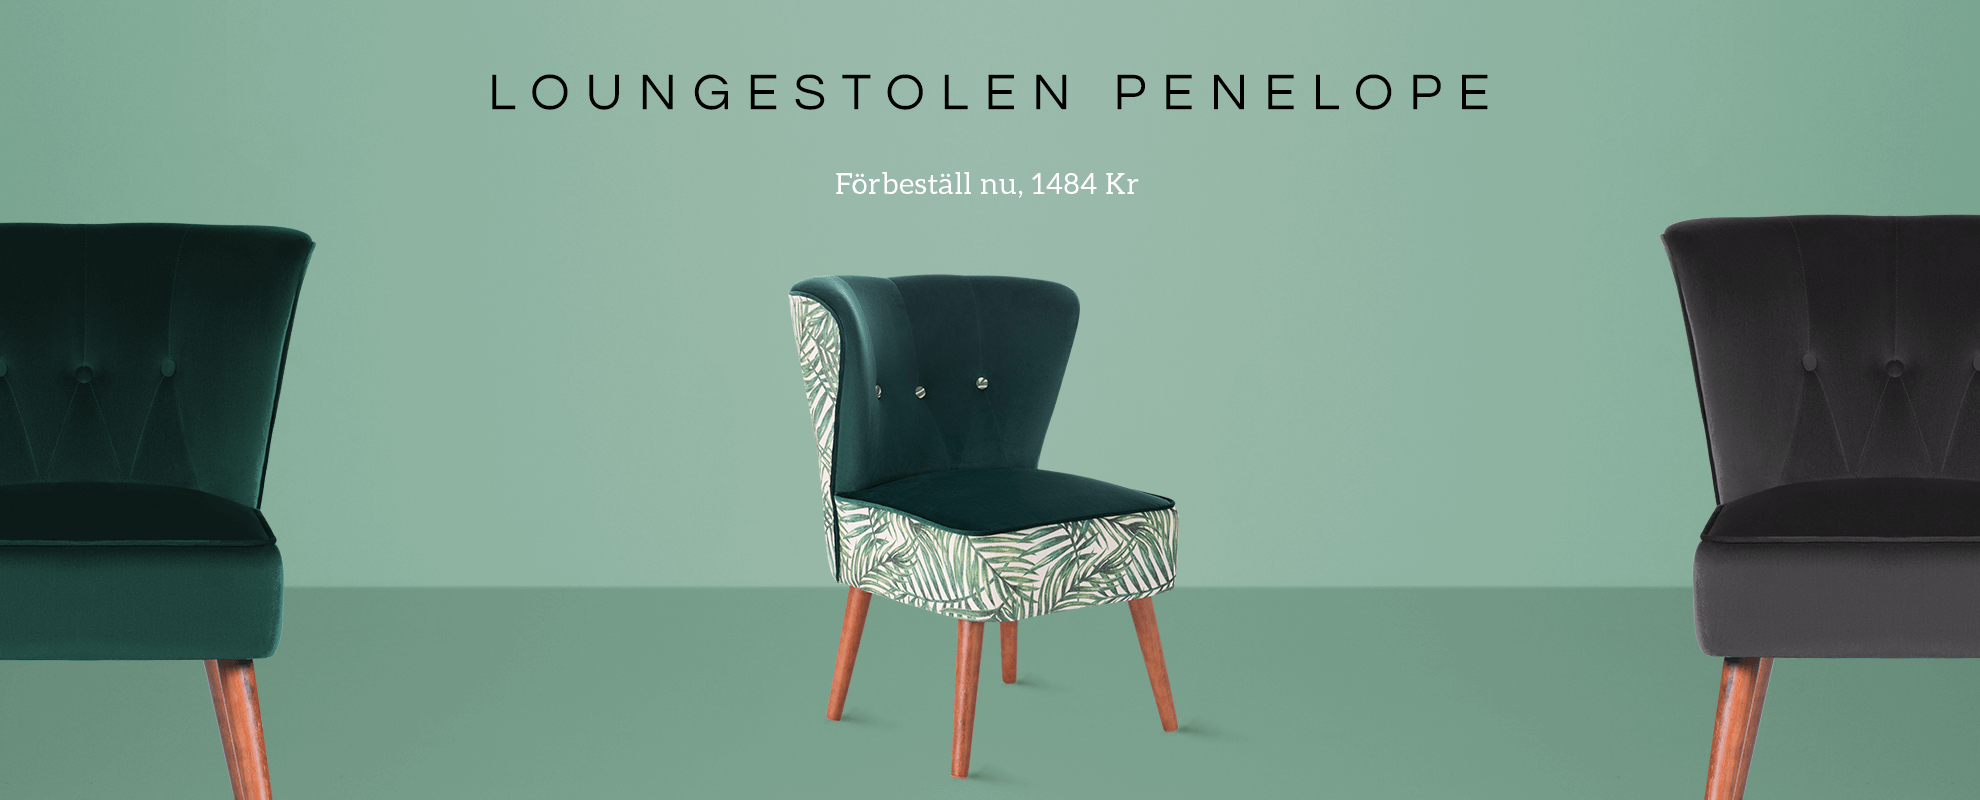 Penelope chairs